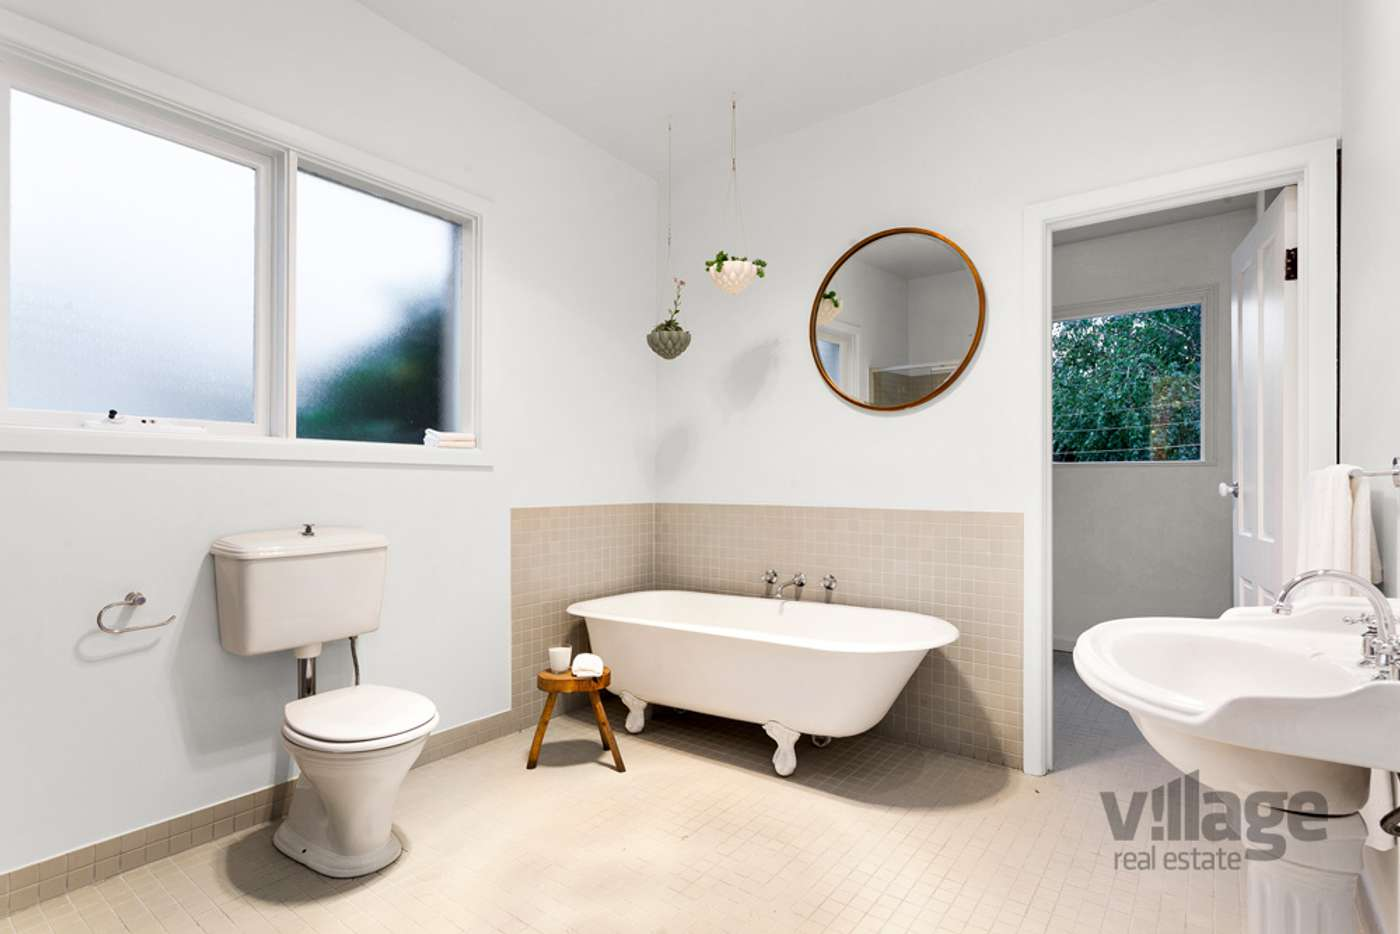 Sixth view of Homely house listing, 30 Simpson Street, Yarraville VIC 3013